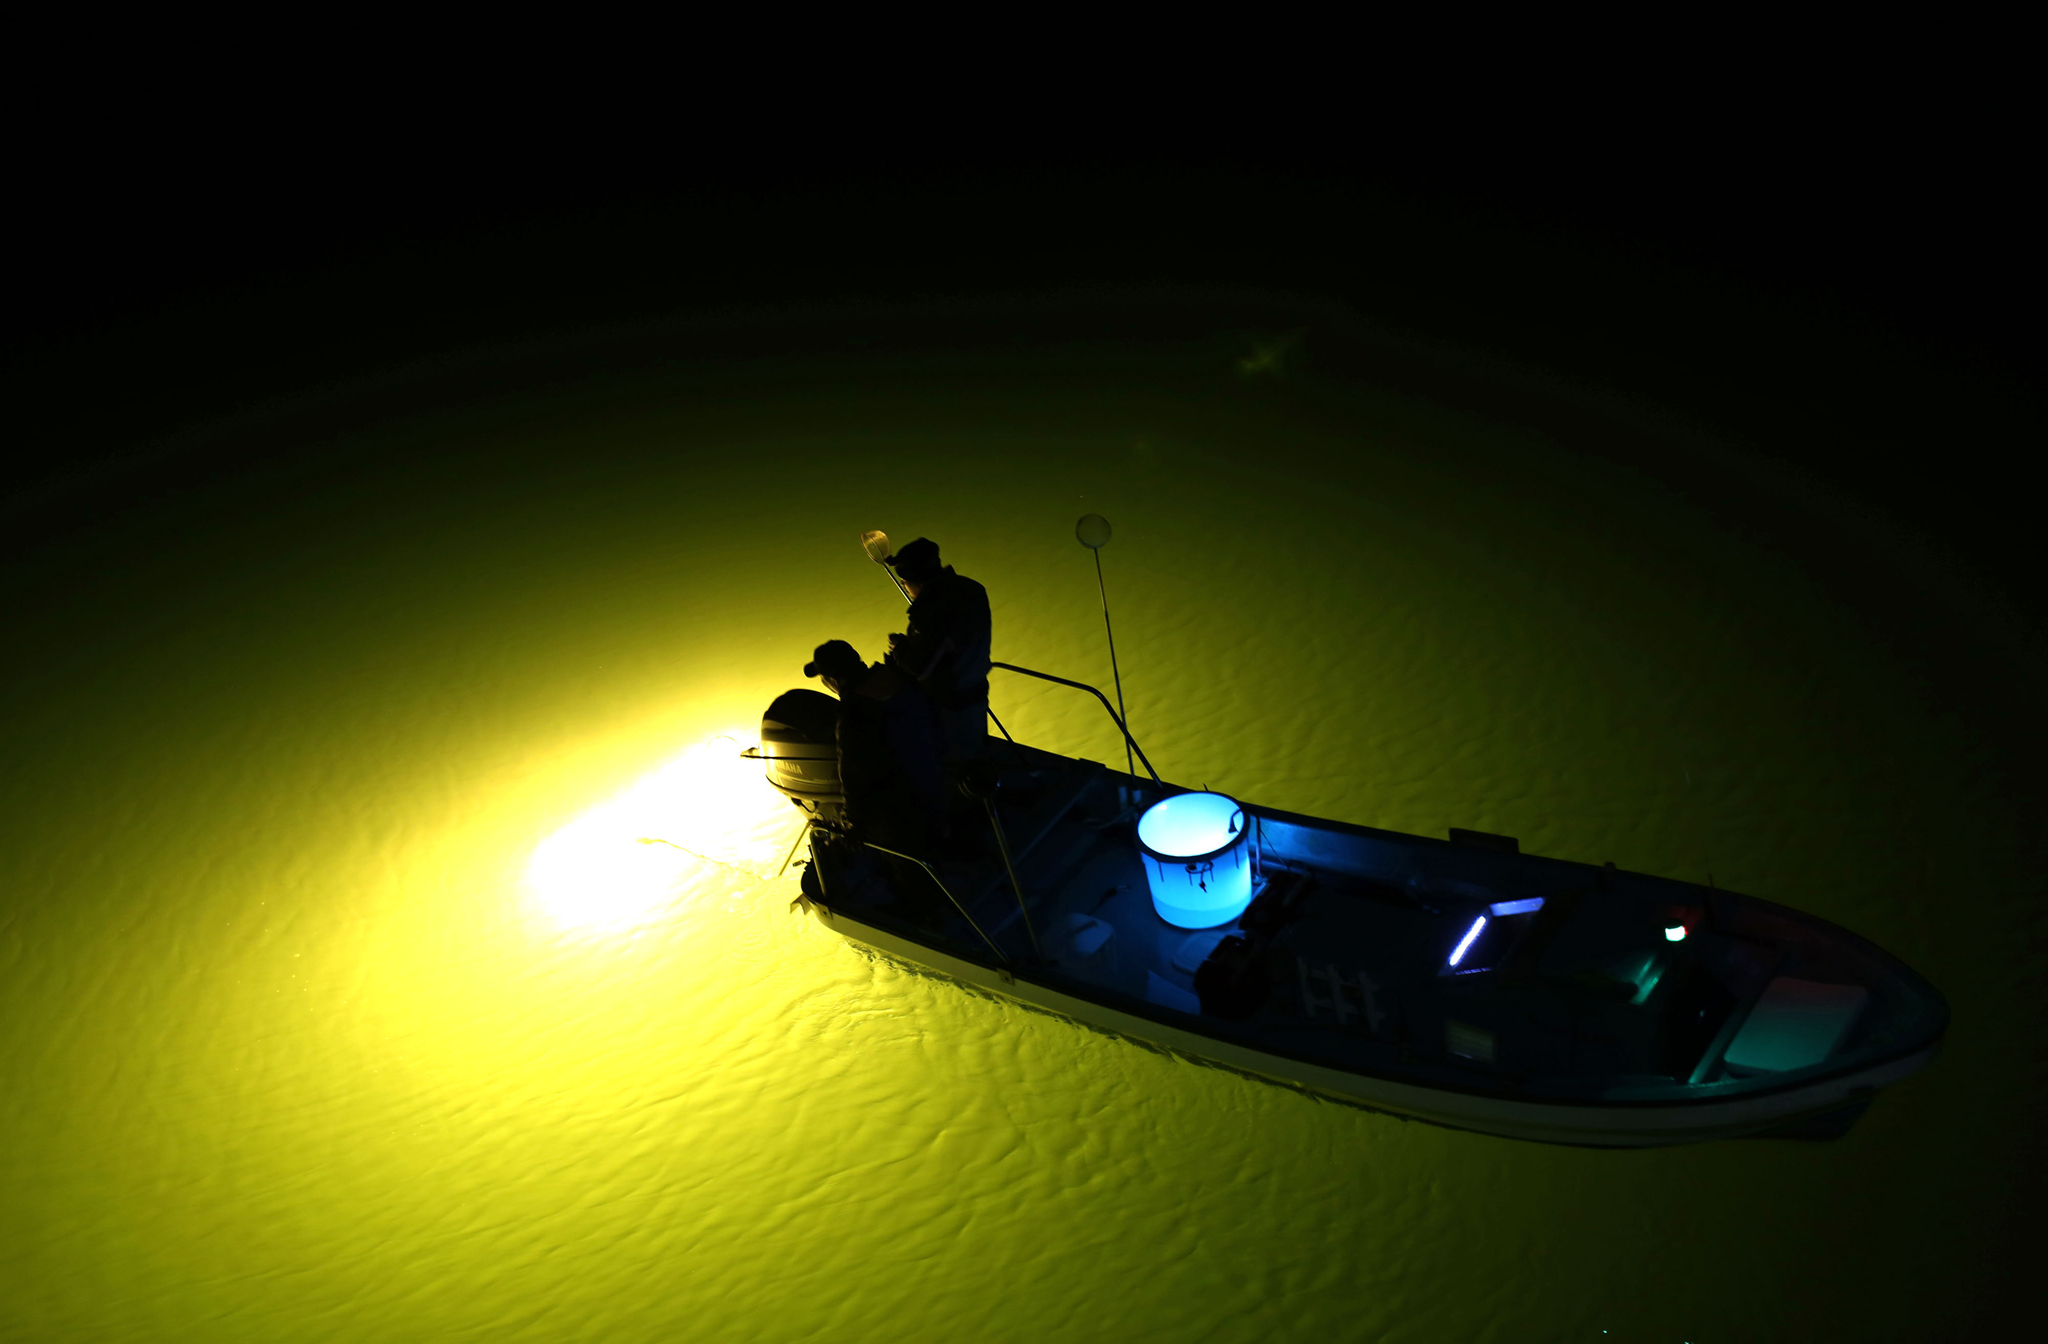 Young Eels Night Fishing...A fishermen uses lamps to search for young eels on the Yoshino River in Tokushima, Japan, on Saturday, March 12, 2016. Young eels are approximately 2 inches (5 centimeters) in length. Those caught during fishing season are sold at a price of between 100 yen and 300 yen to farming facilities. Photographer: Buddhika Weerasinghe/Bloomberg.